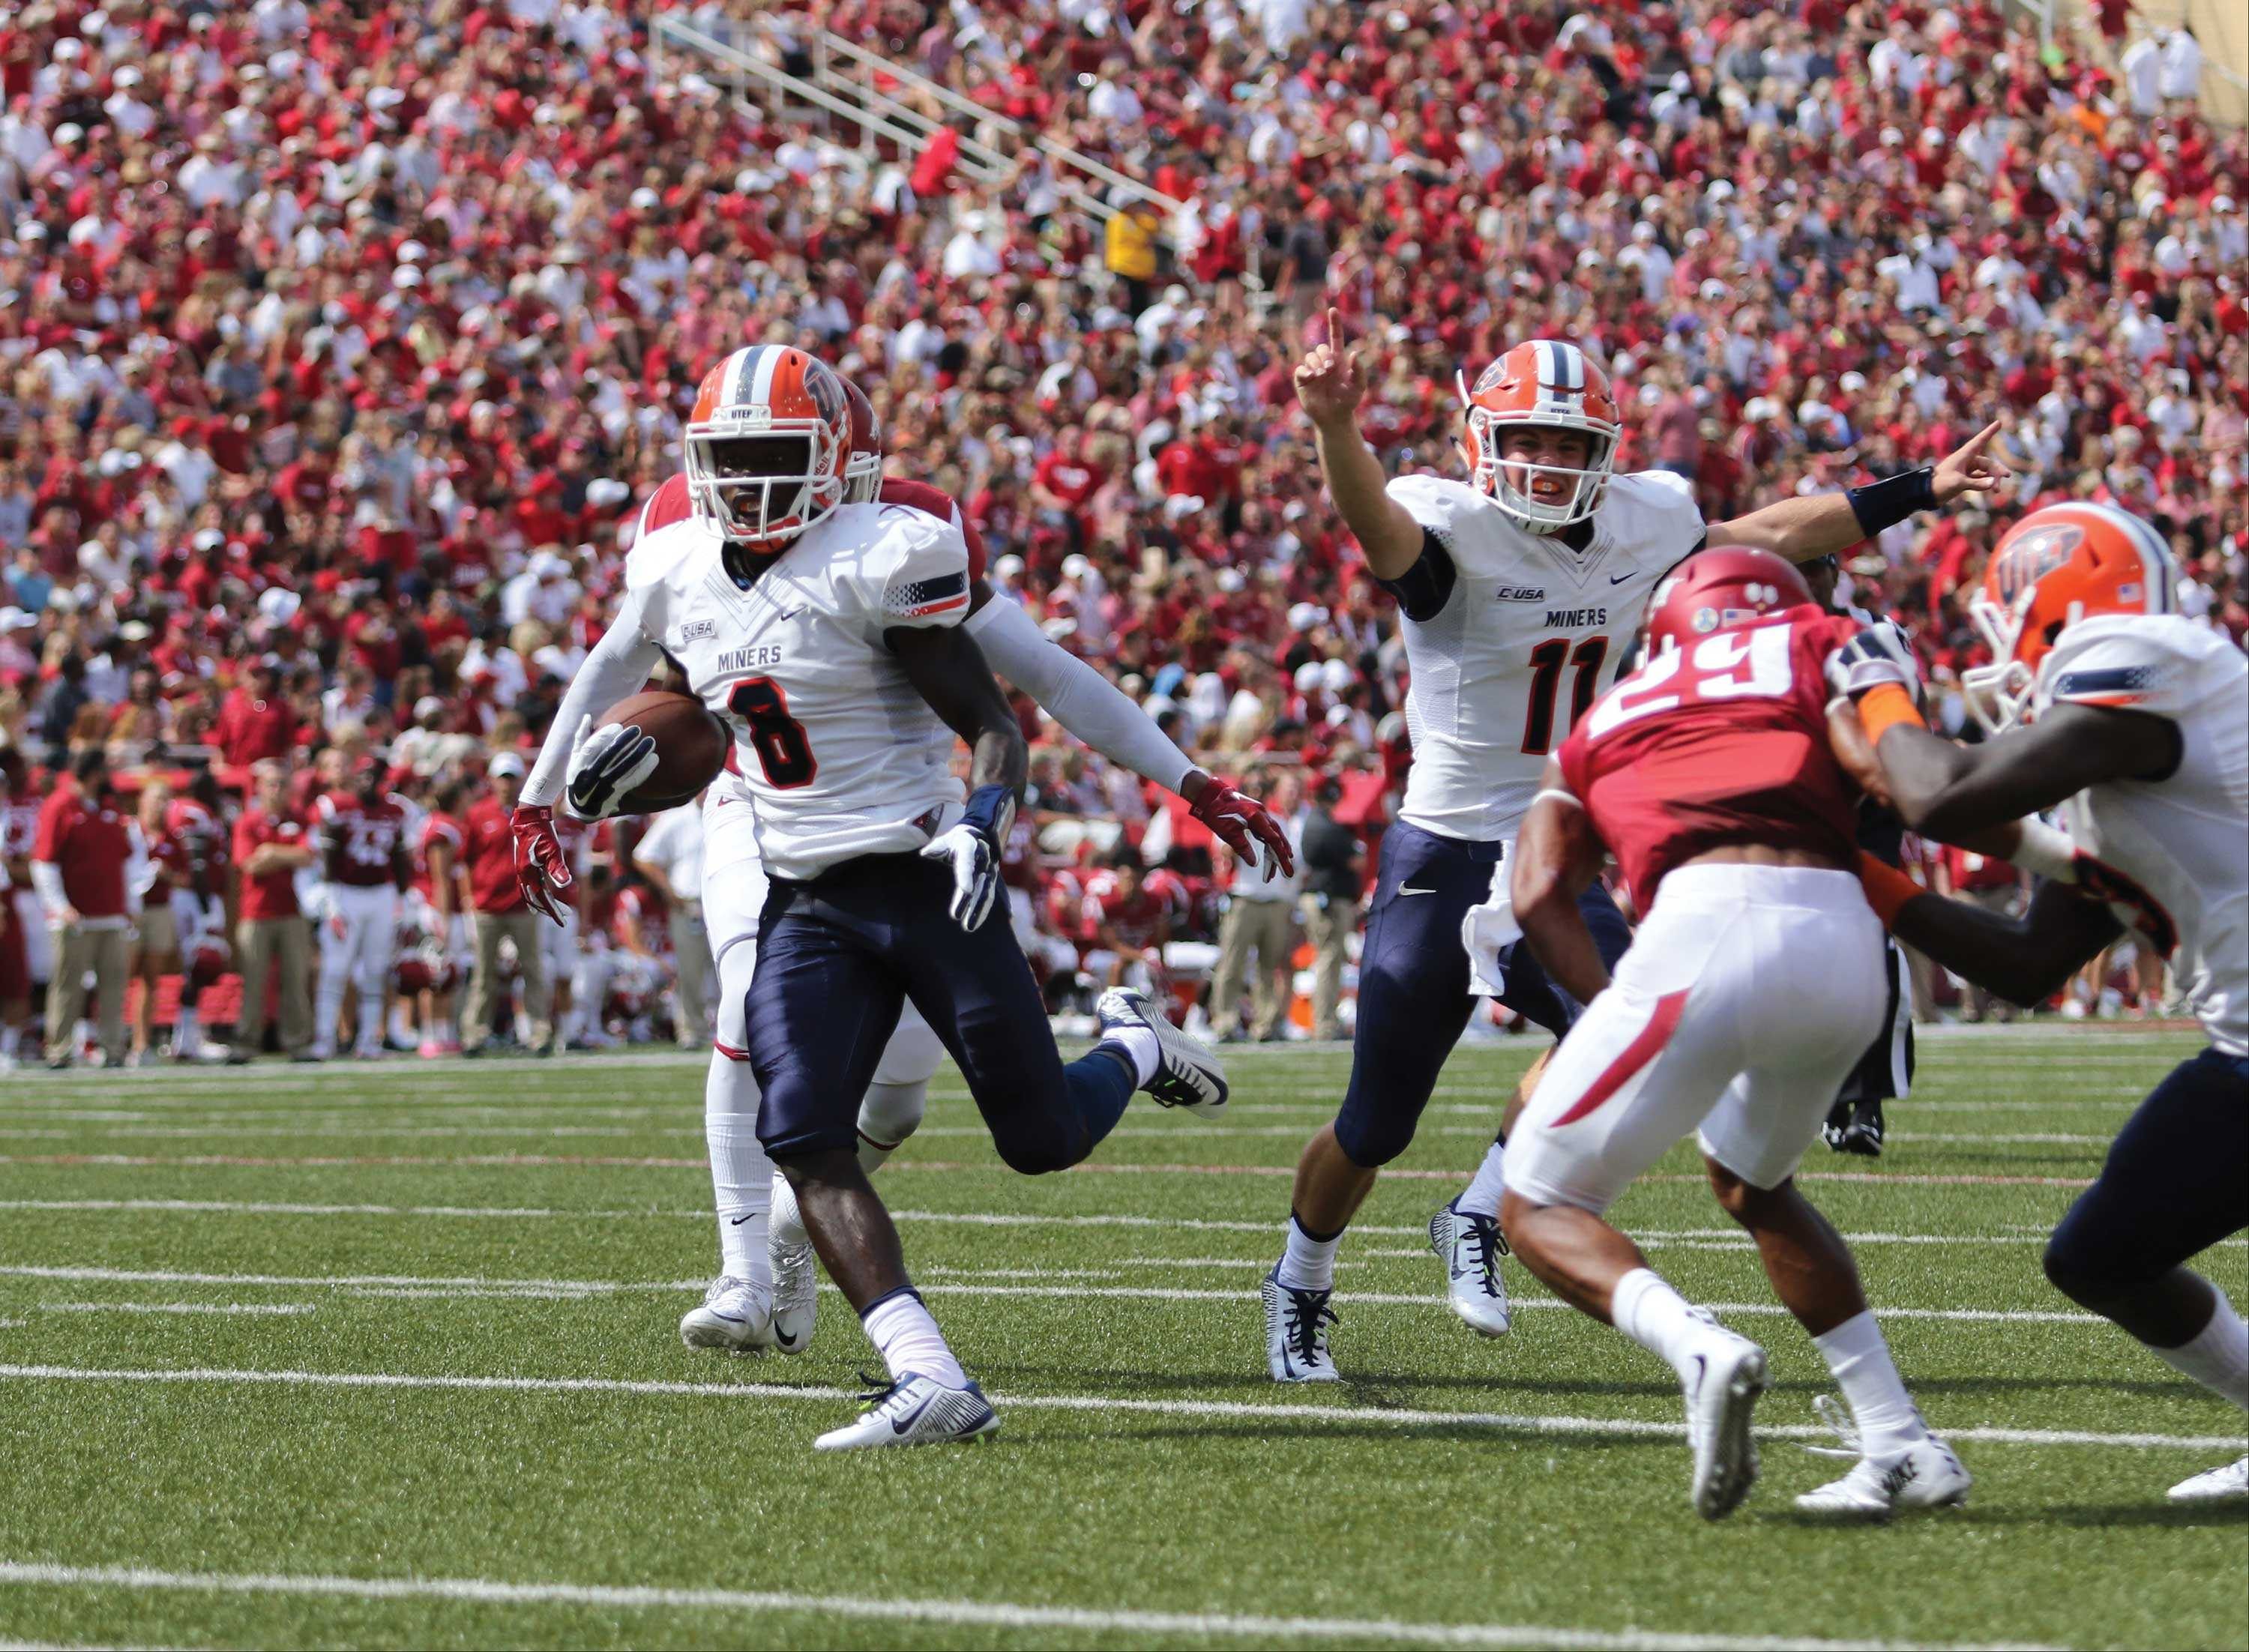 The last time  UTEP football started 0-2 was back in 2012. The Miners would go on to finish 3-9 that season.